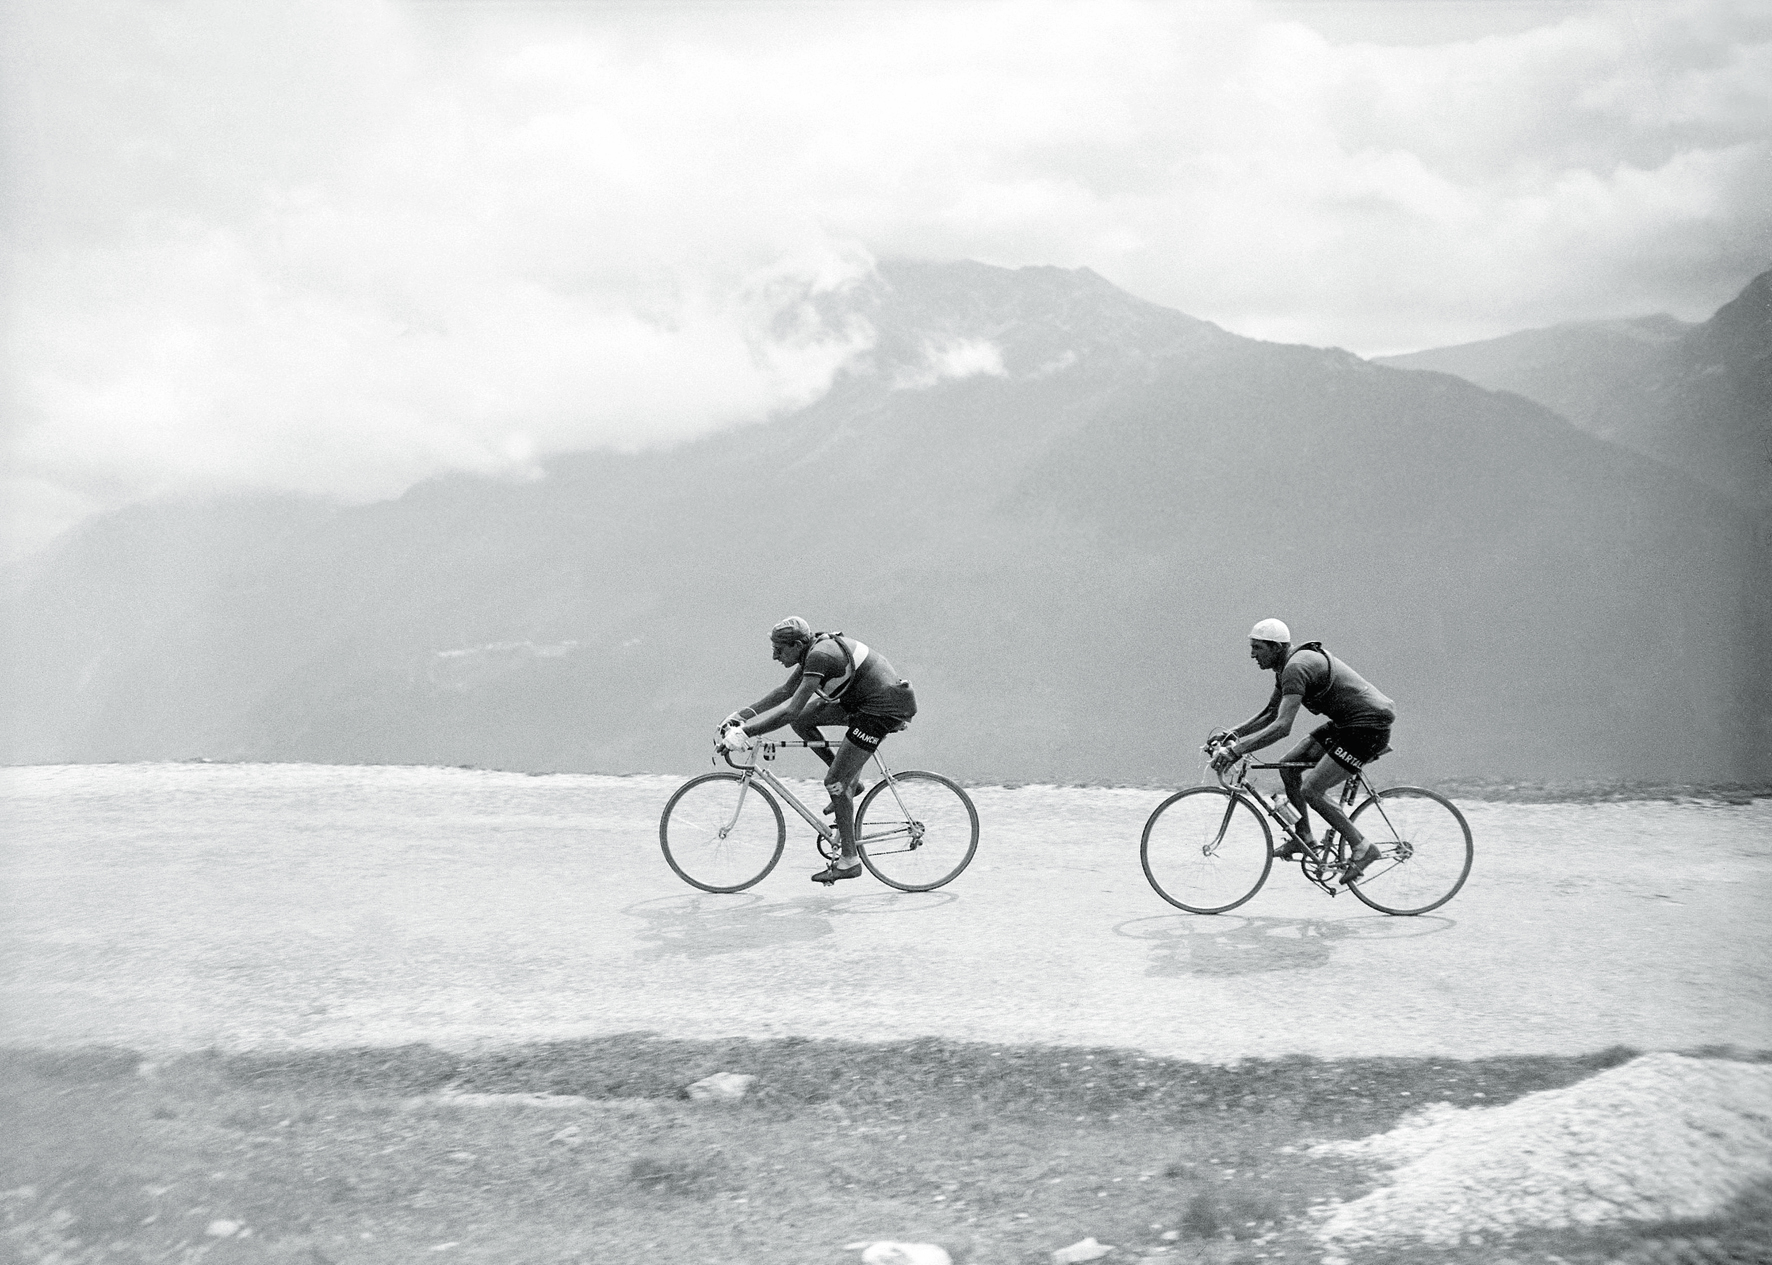 © Tour de France - The Golden Age 1940s-1970s, to be published by teNeues in July 2015, € 59,90 - www.teneues.com. Fausto Coppi, Gino Bartali, Briançon (Hautes-Alpes) - Aosta (Italy), 17th Stage, 19 July 1949, Photo © Presse Sports